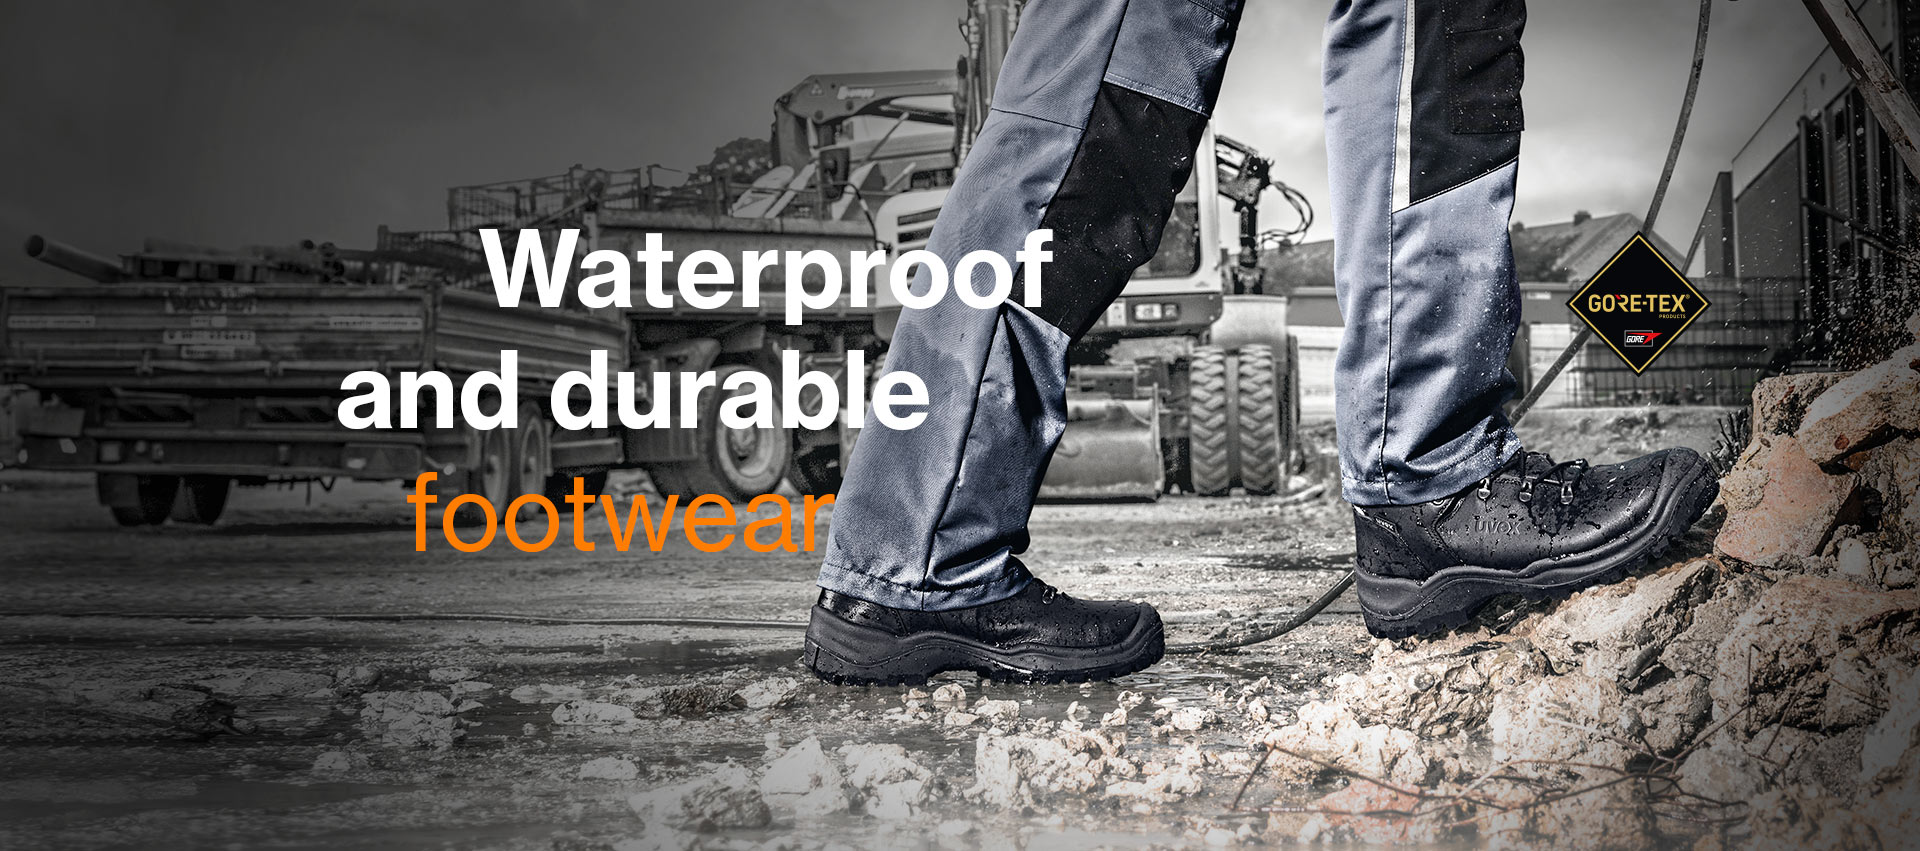 Waterproof and durable footwear from uvex